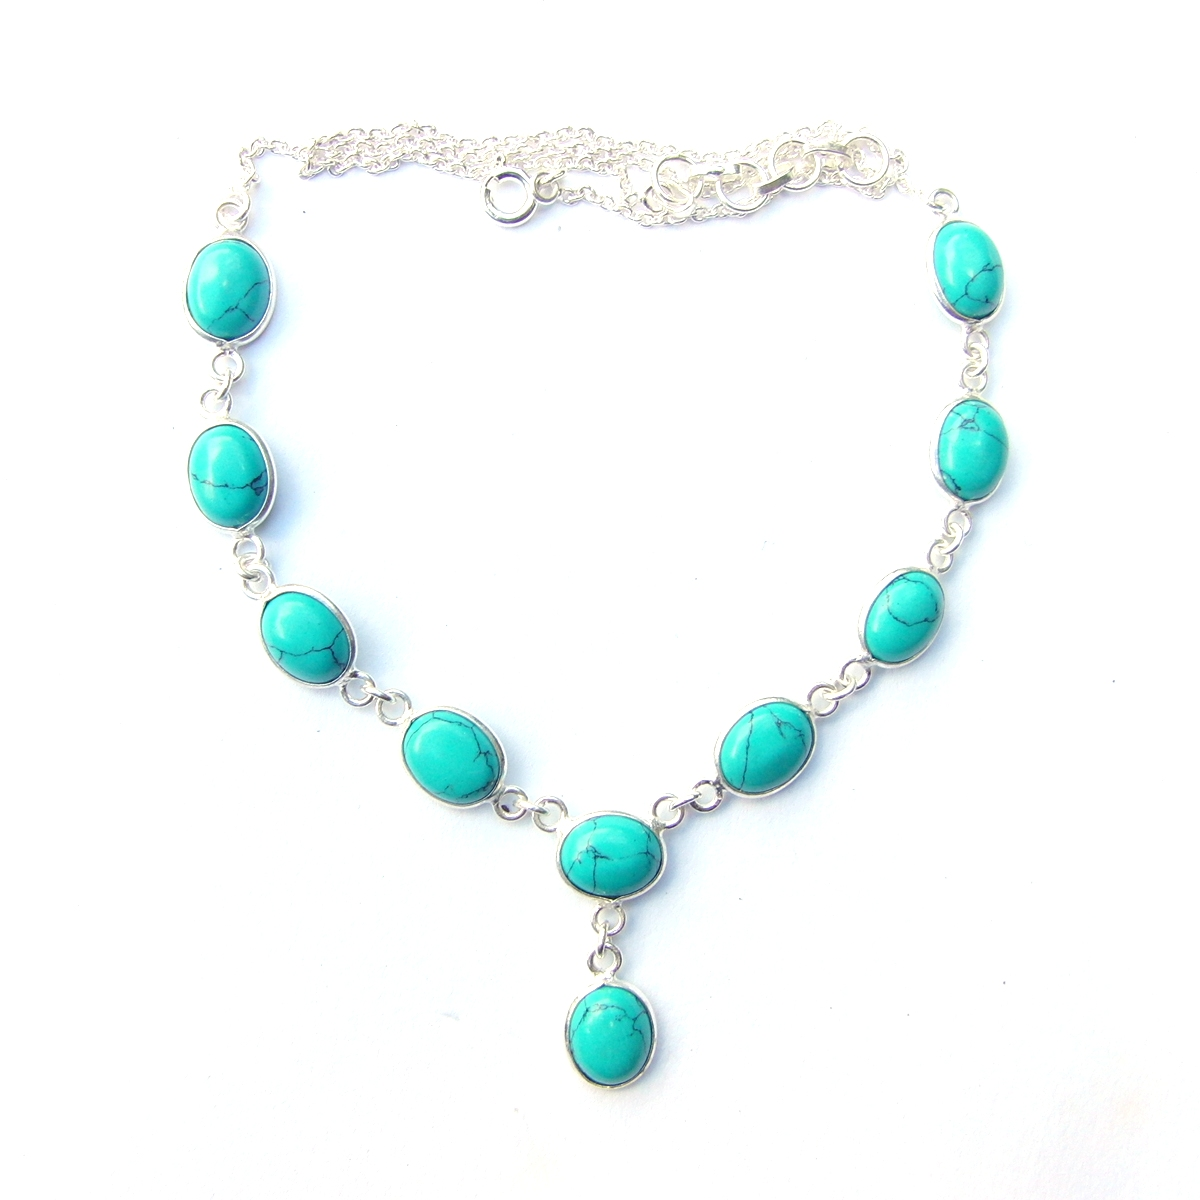 Turquoise Large Oval Necklace